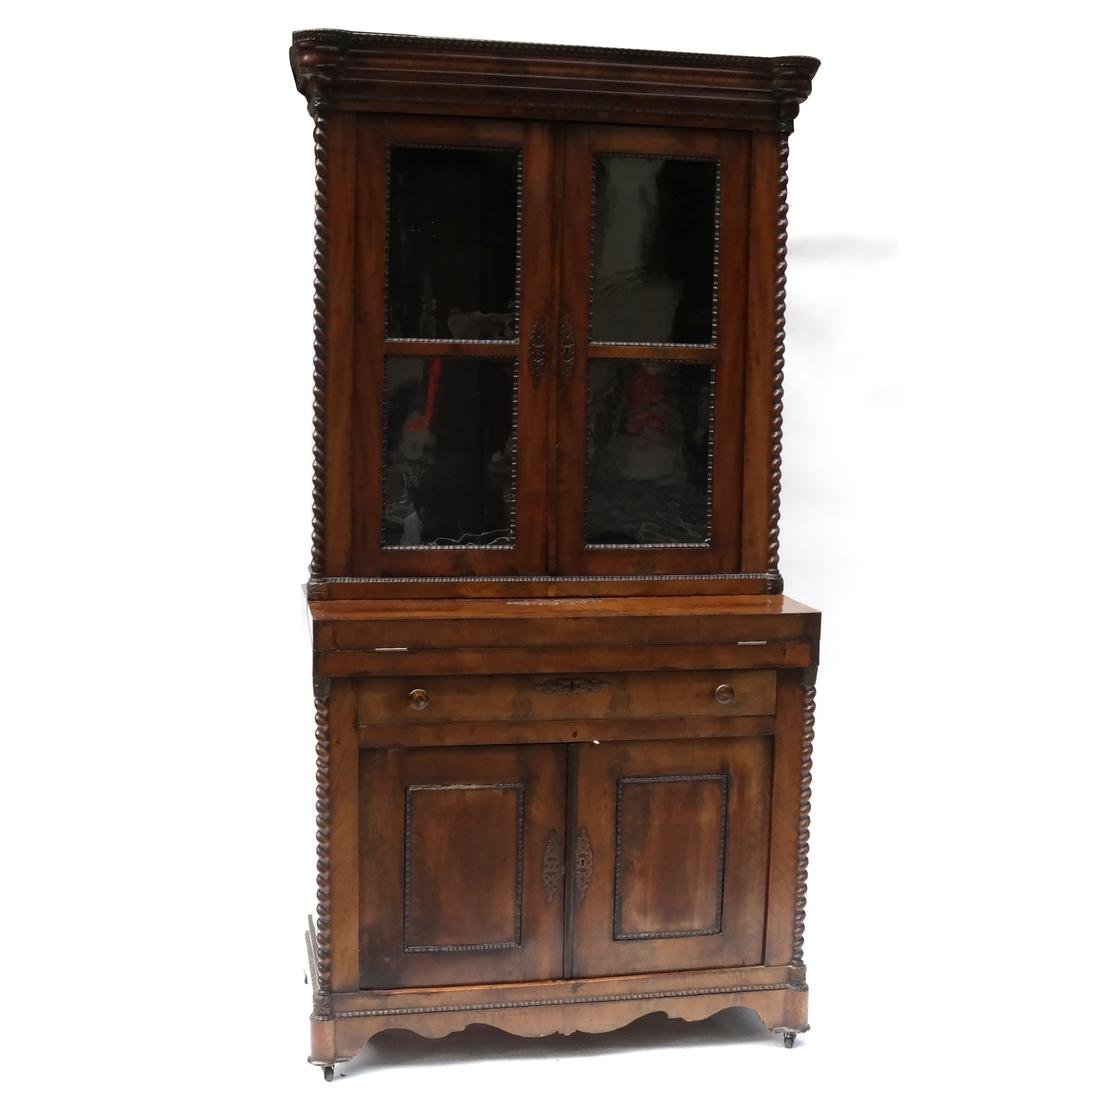 Antique Continental Two-Part Cabinet